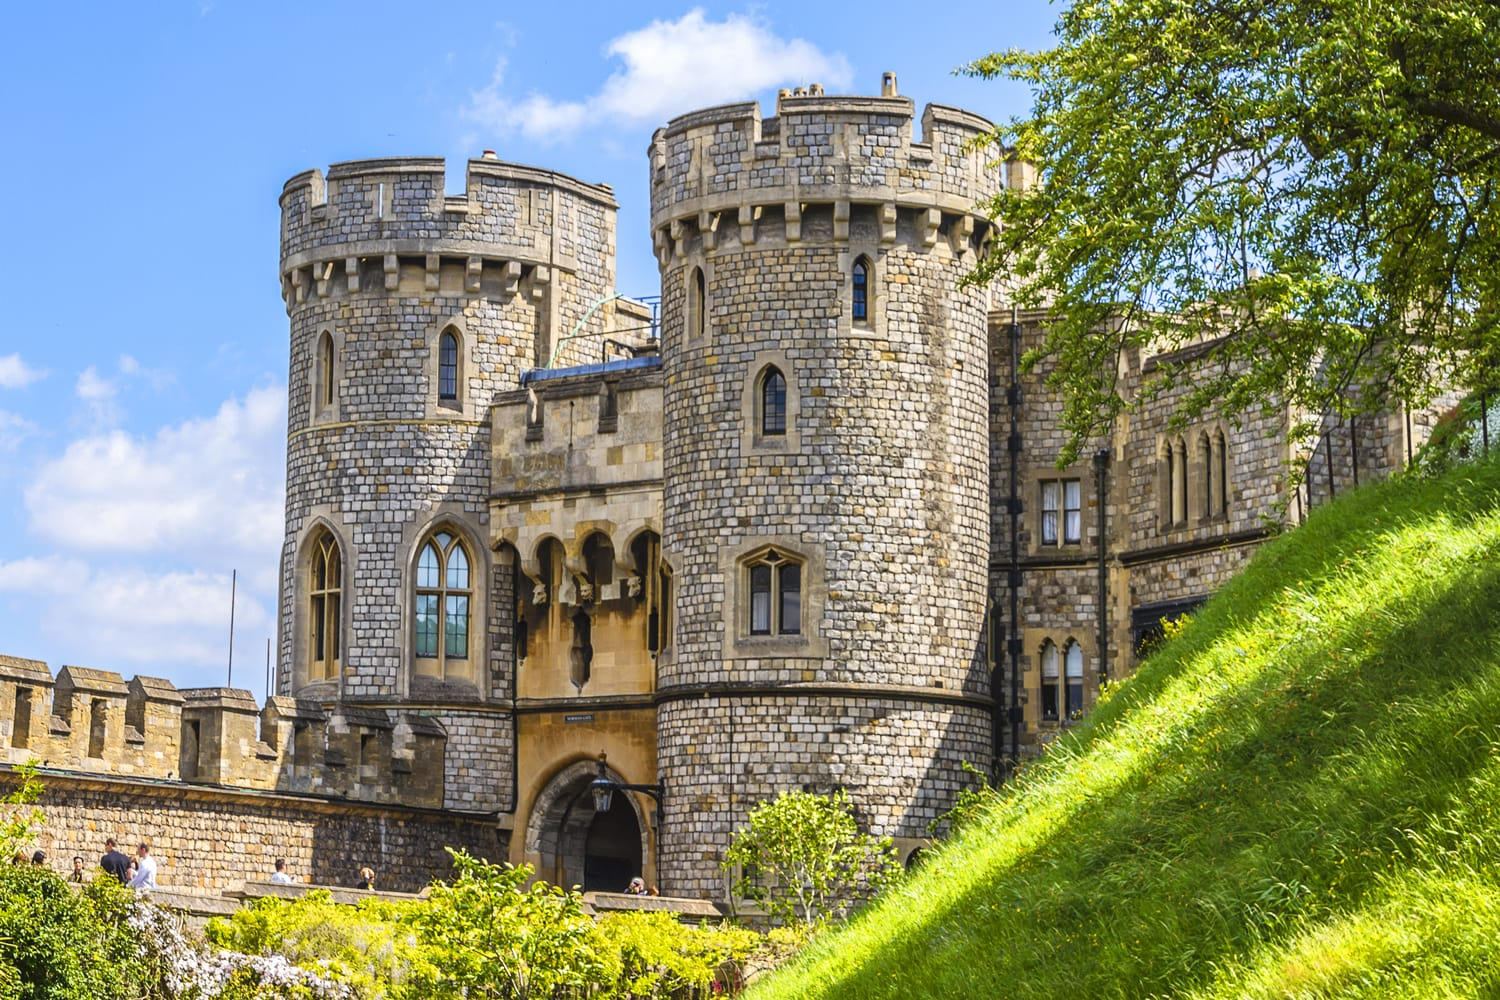 Outside view of Medieval Windsor Castle. Windsor Castle is a royal residence at Windsor in the English county of Berkshire.